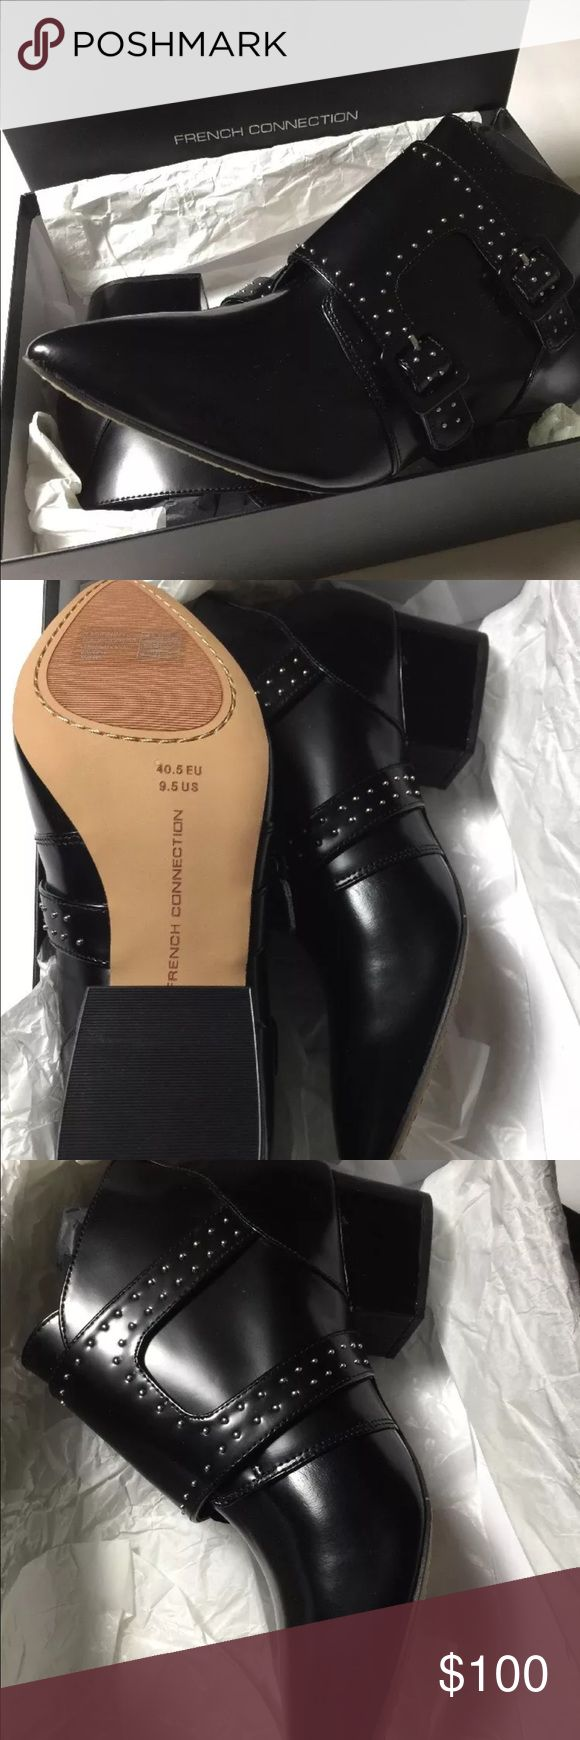 NIB French Connection Roree double monkstrap Brand new in the box French Connection Roree black ankle booties. Size 9.5 eu size 40.5 French Connection Shoes Ankle Boots & Booties